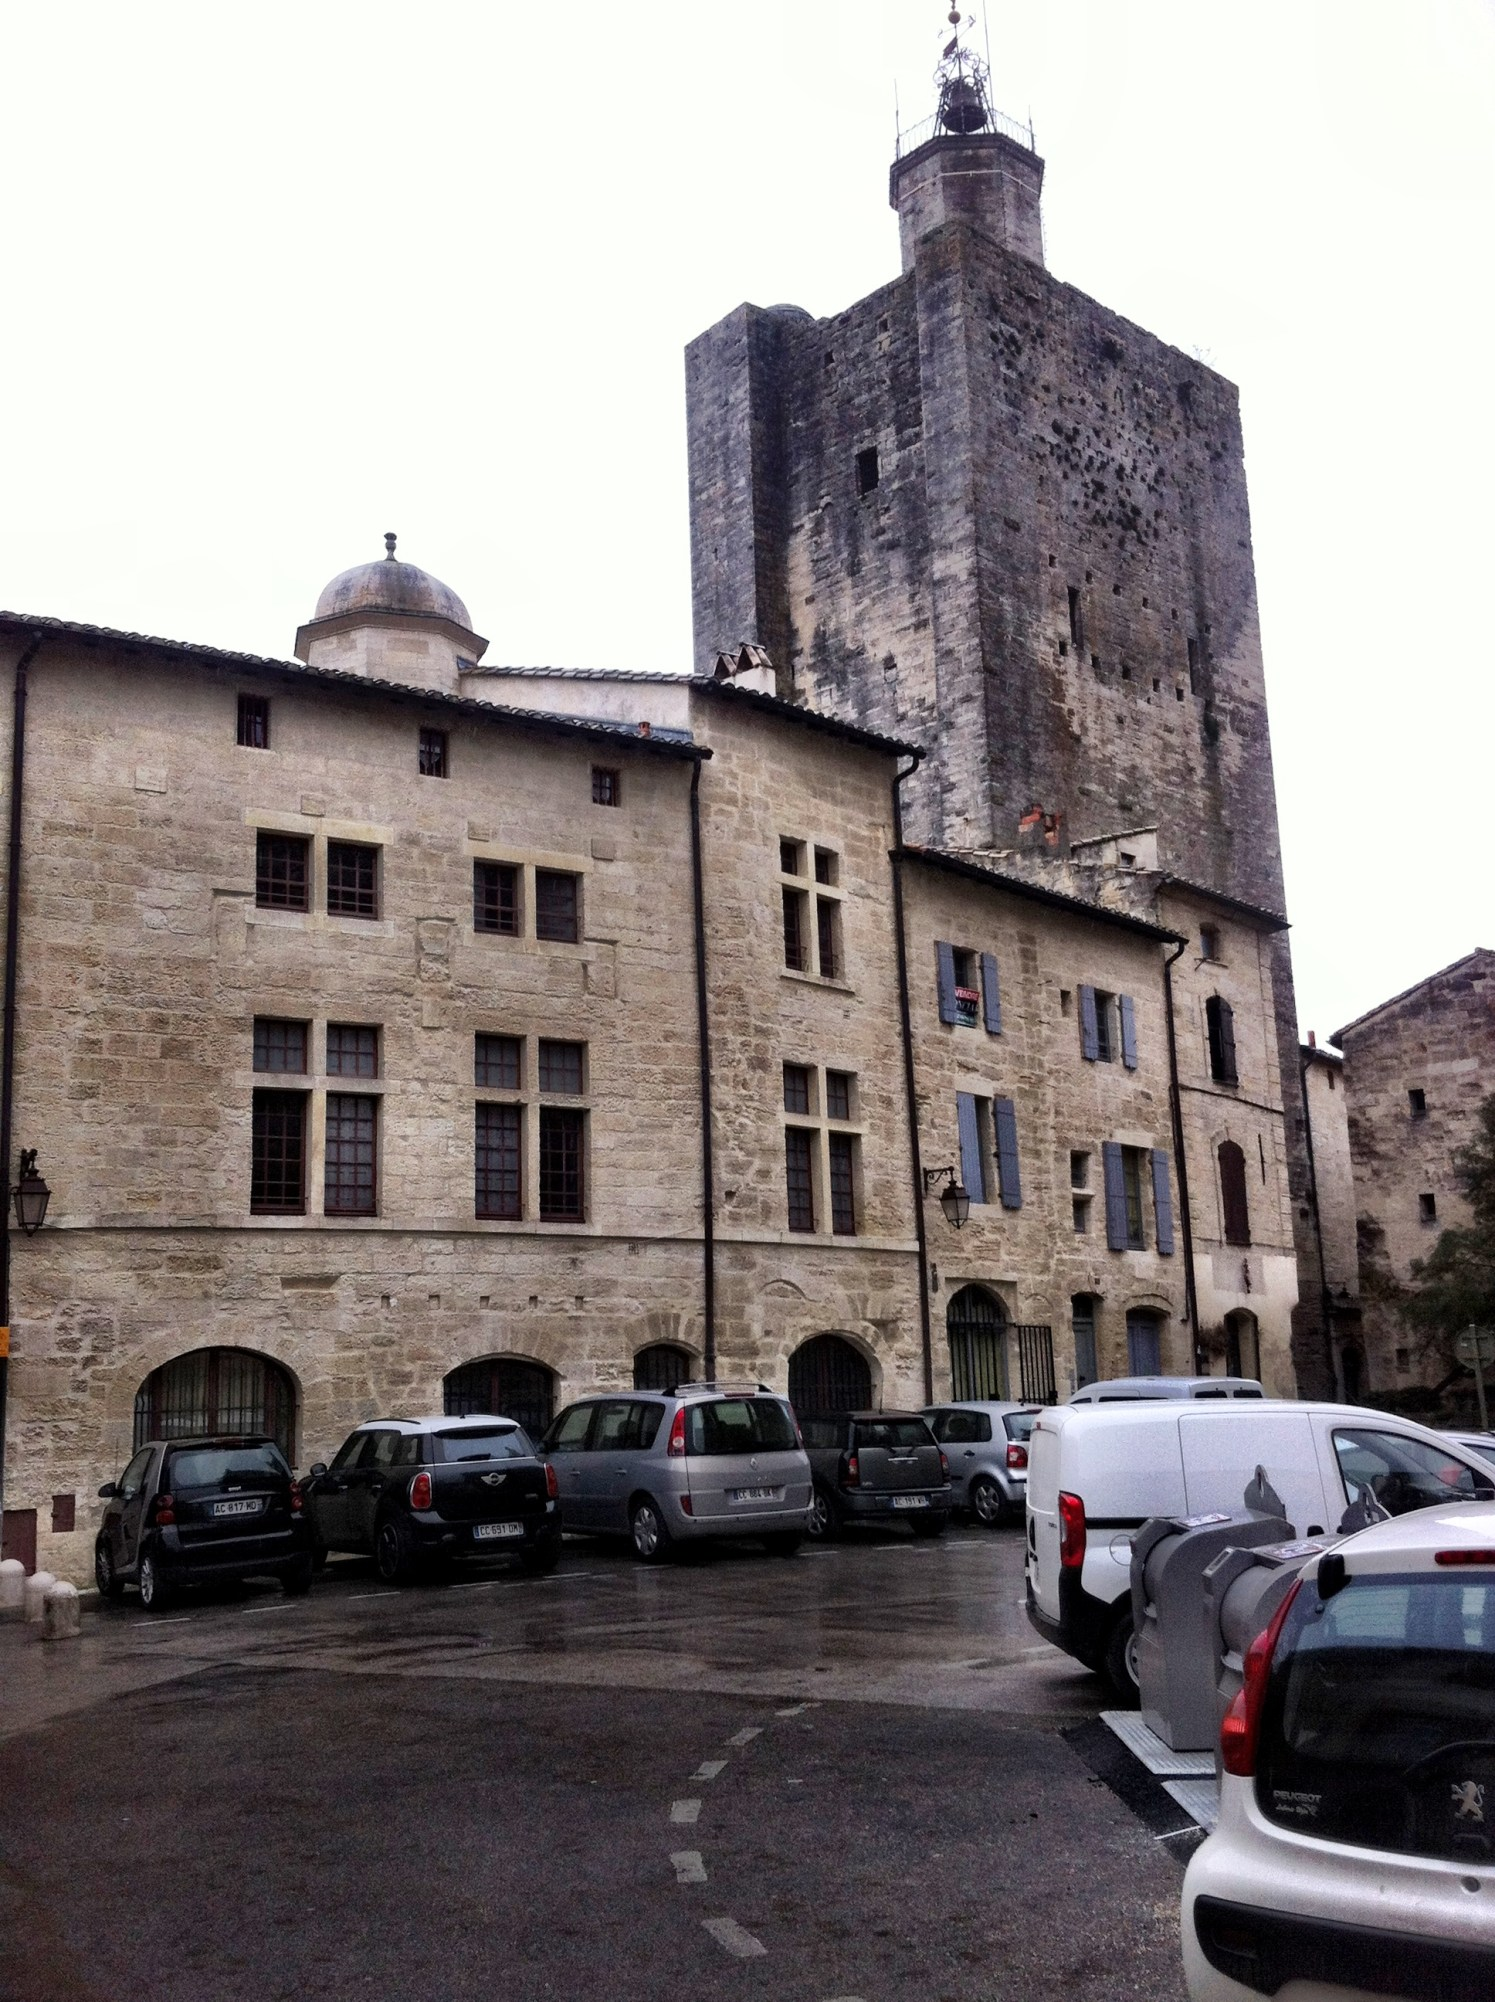 Bishop's Tower - Uzes